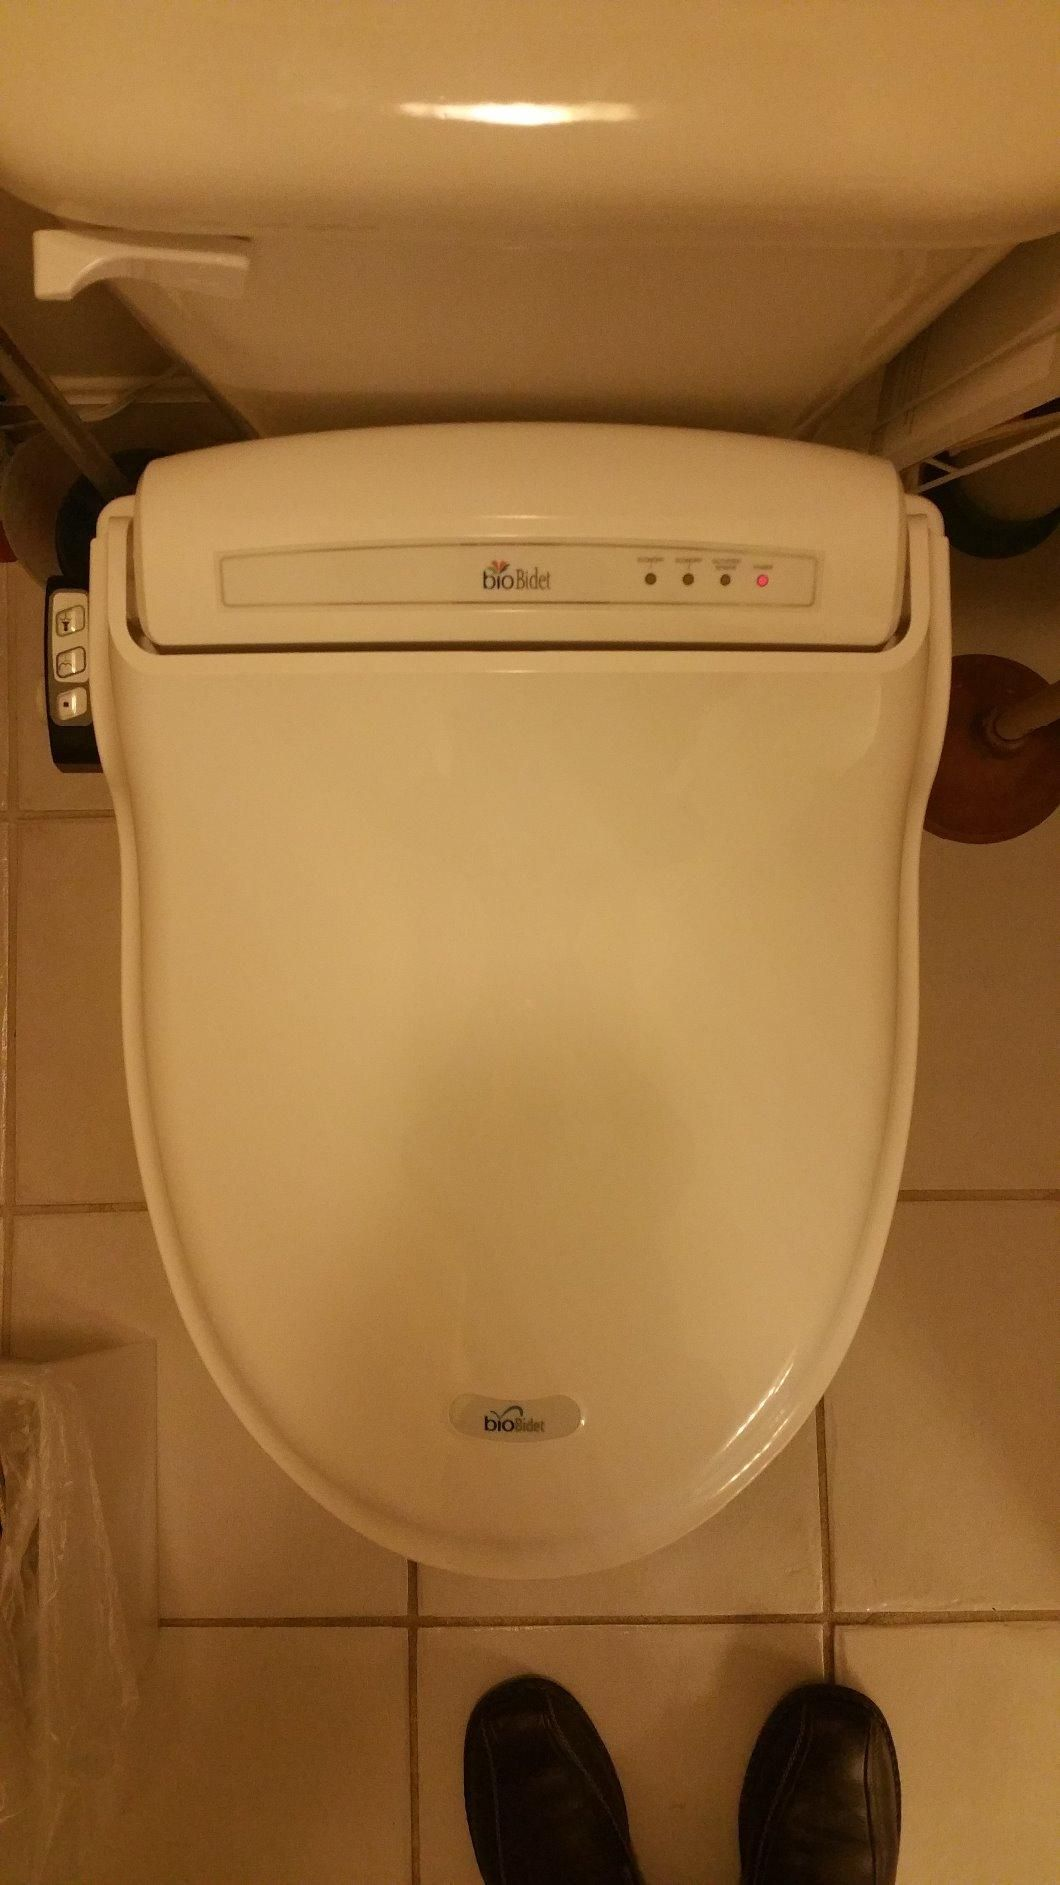 The K 27142 Cr Heated Bidet Toilet Seat Offers Instant Warm Water